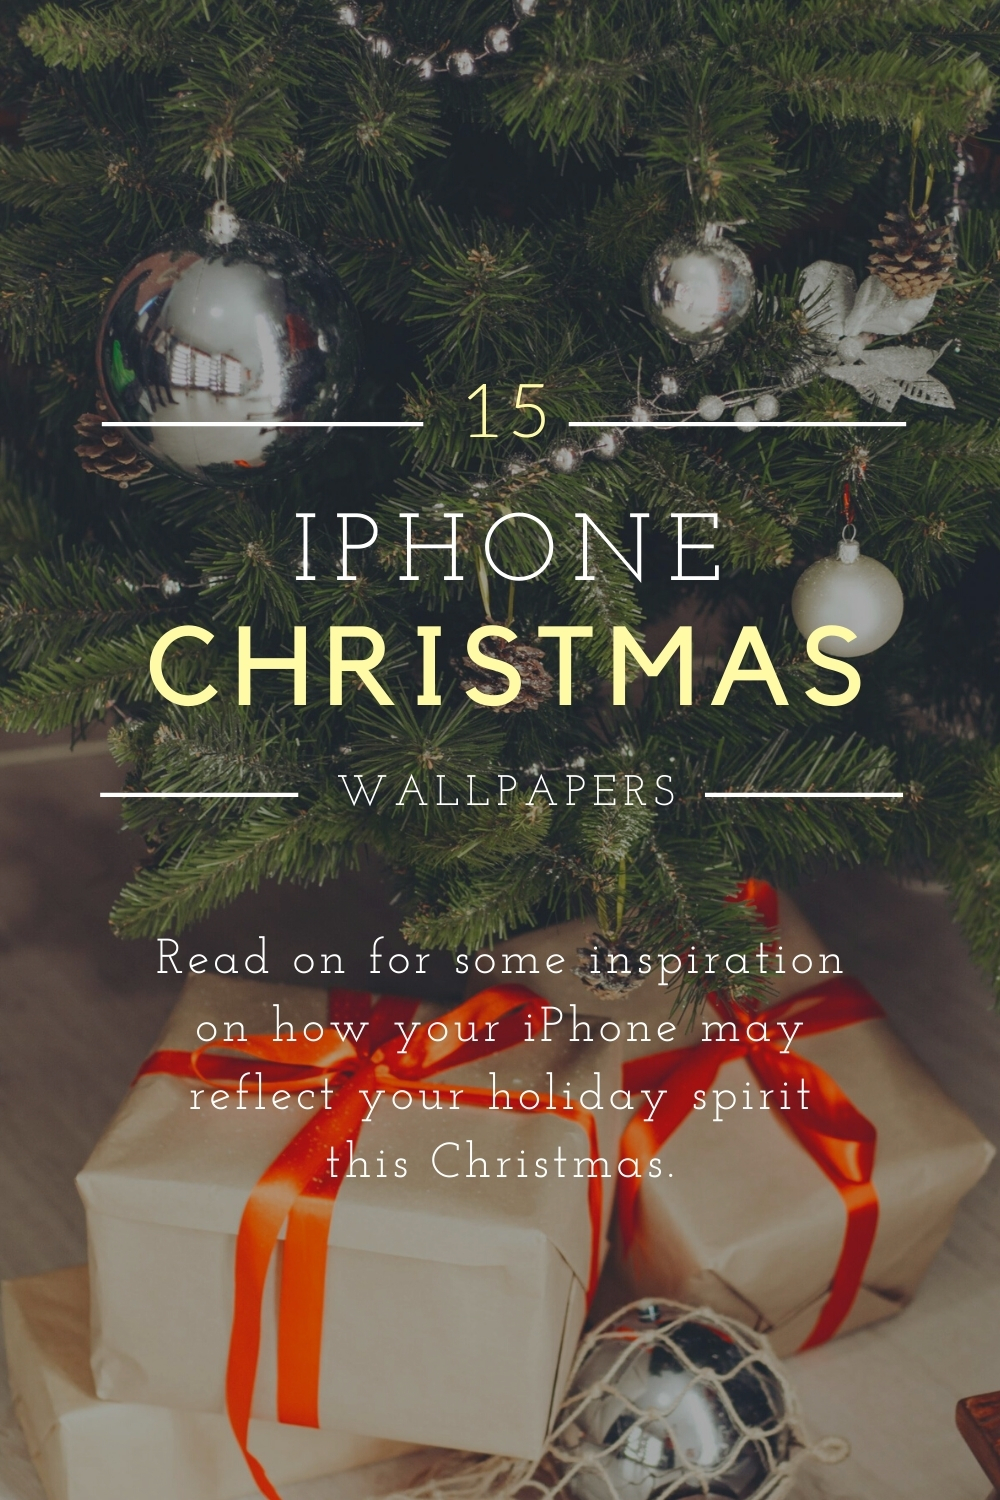 15 Wallpapers for Your iPhone this Christmas